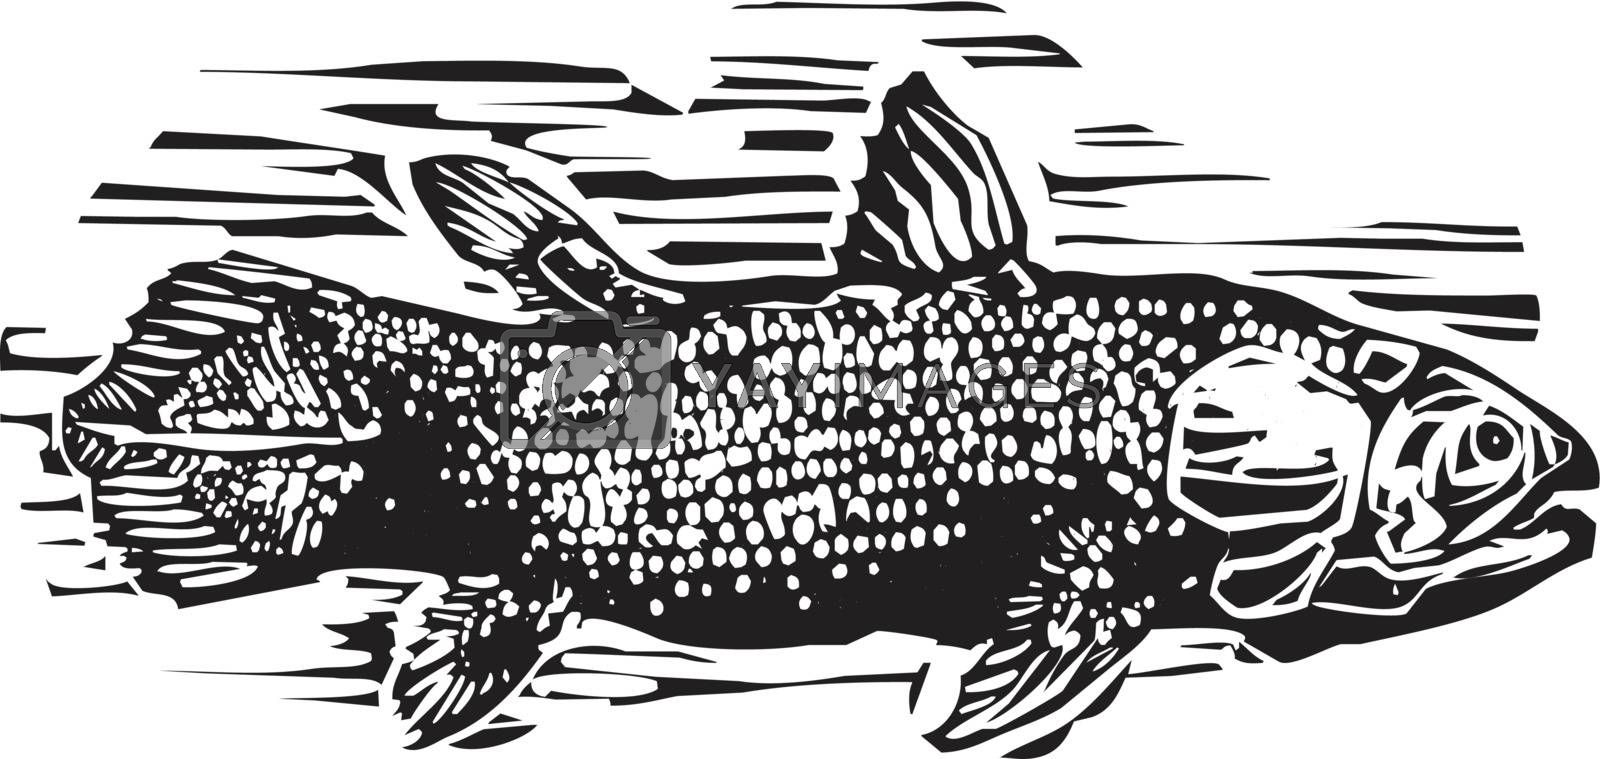 Woodcut style image of a Coelacanth the living fossil fish.